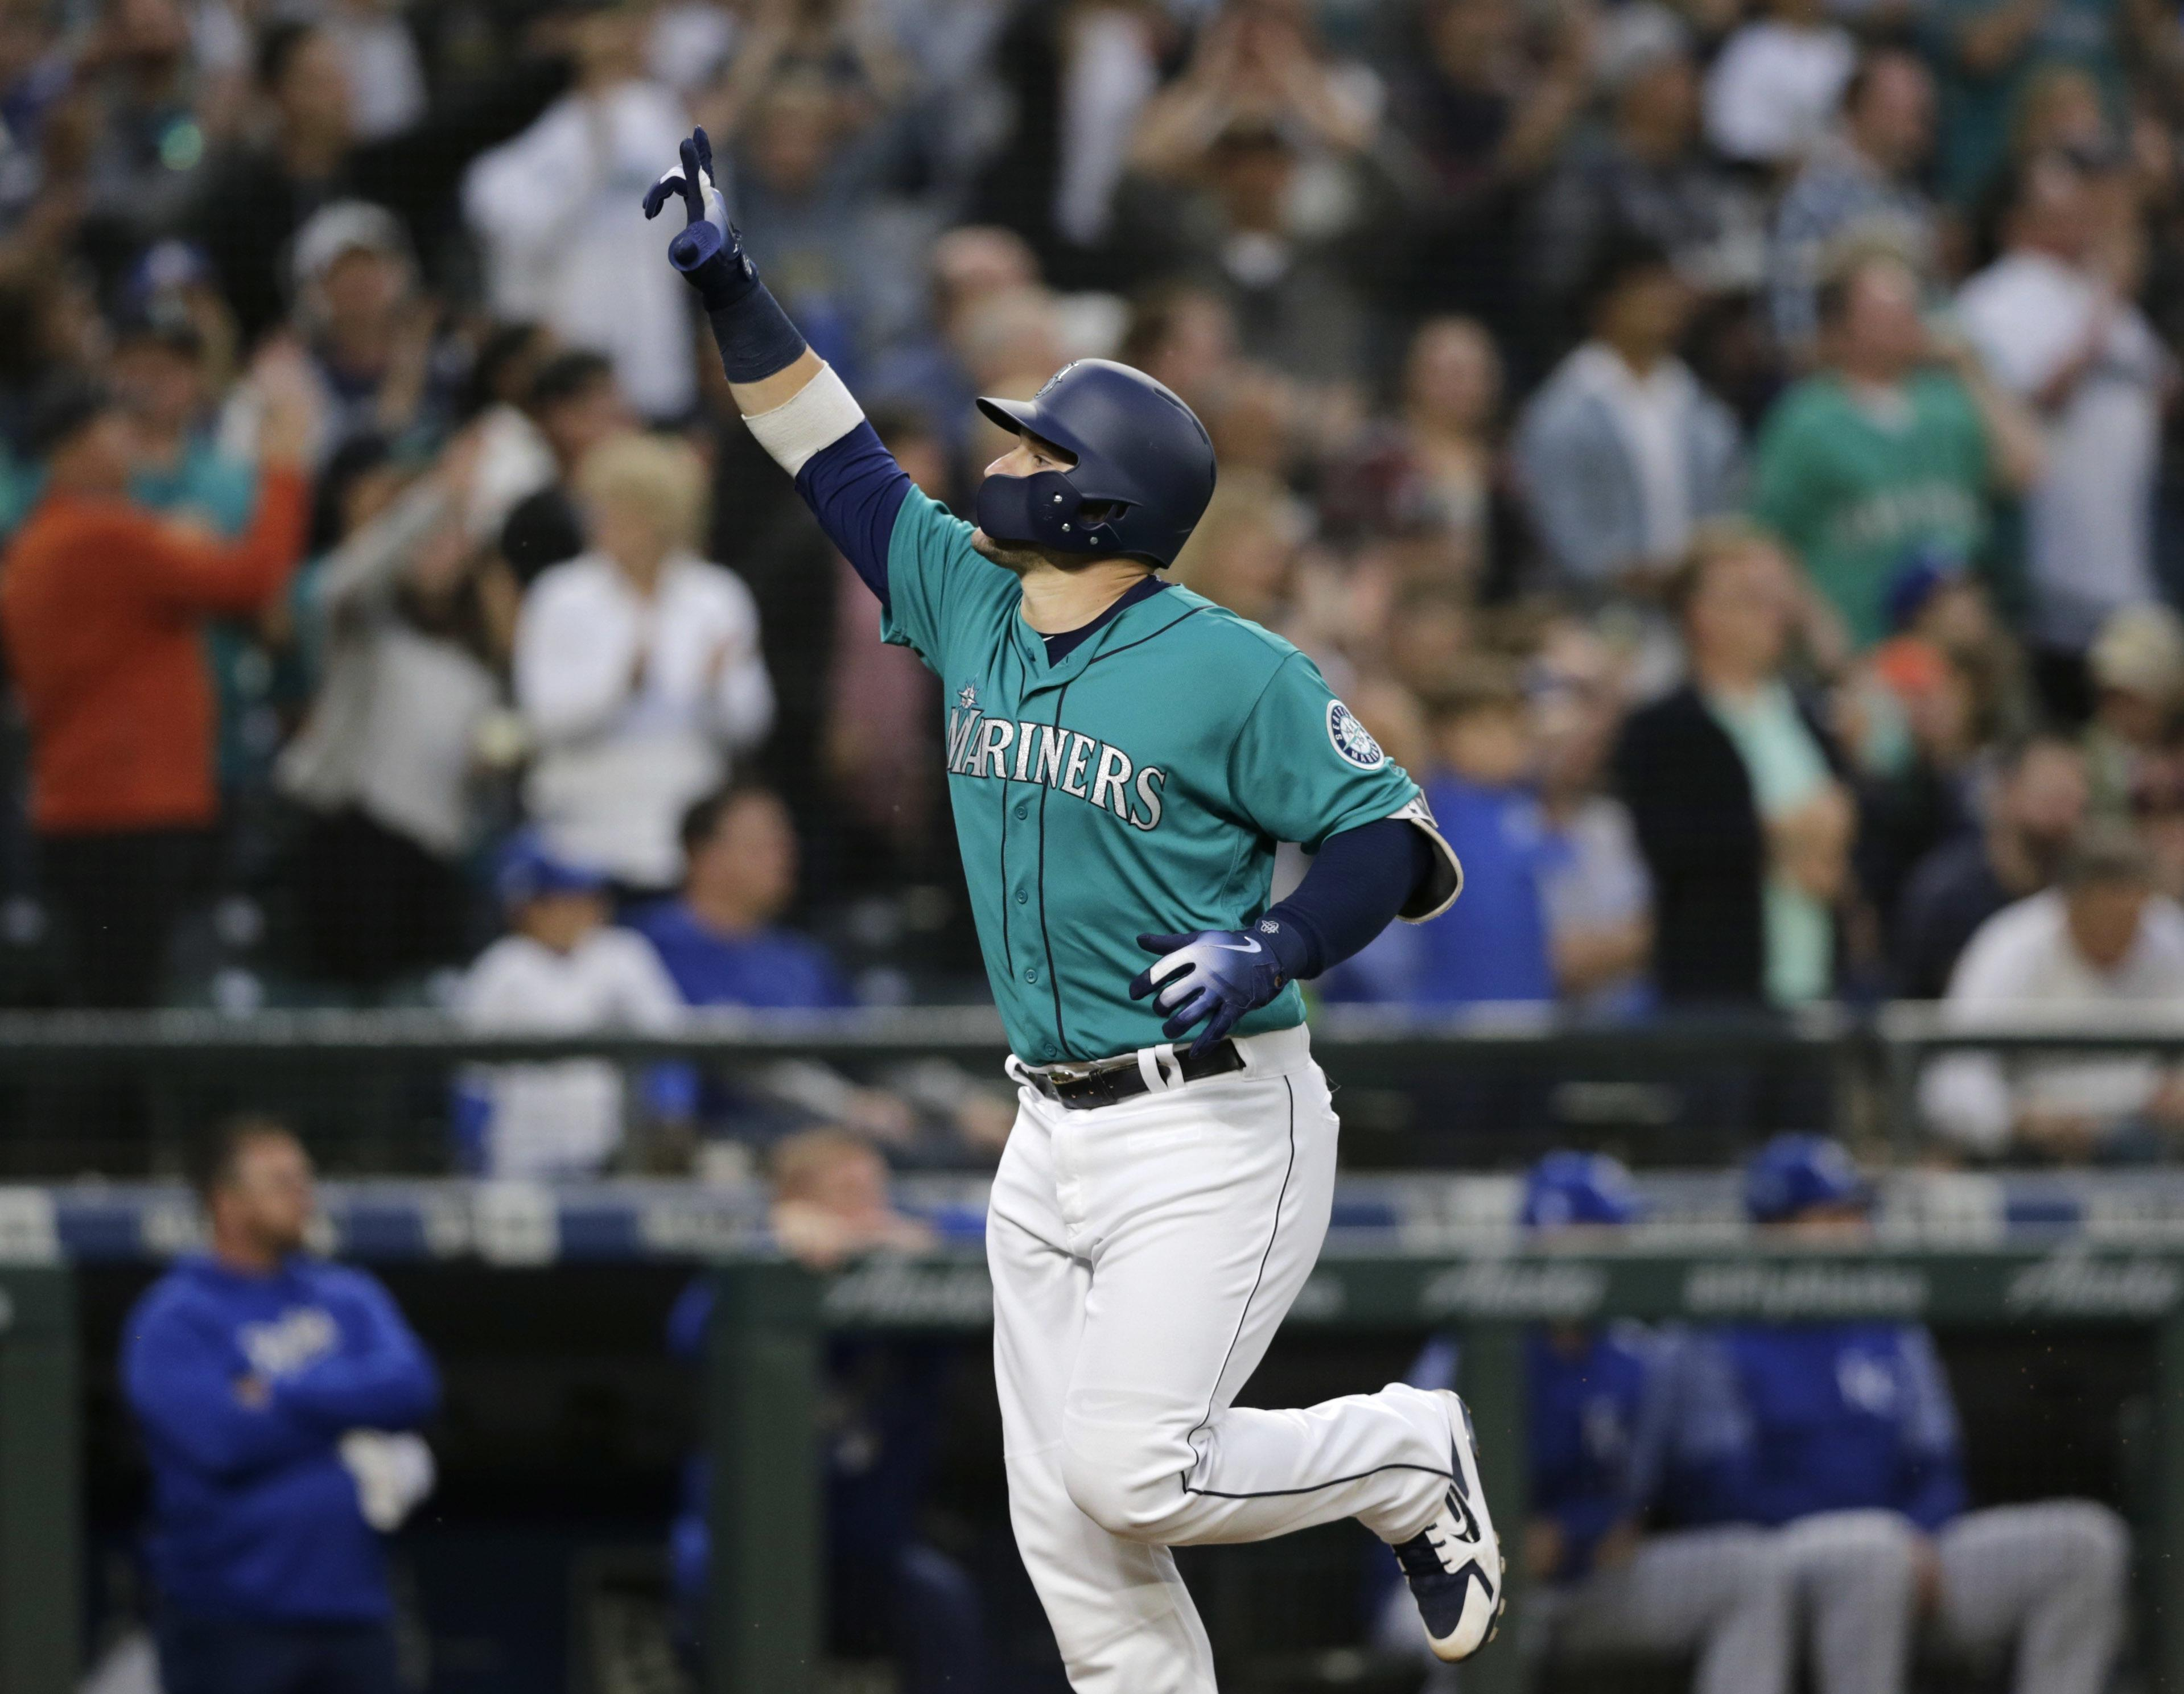 Mariners' Mike Zunino goes on 10-day DL with an ankle injury